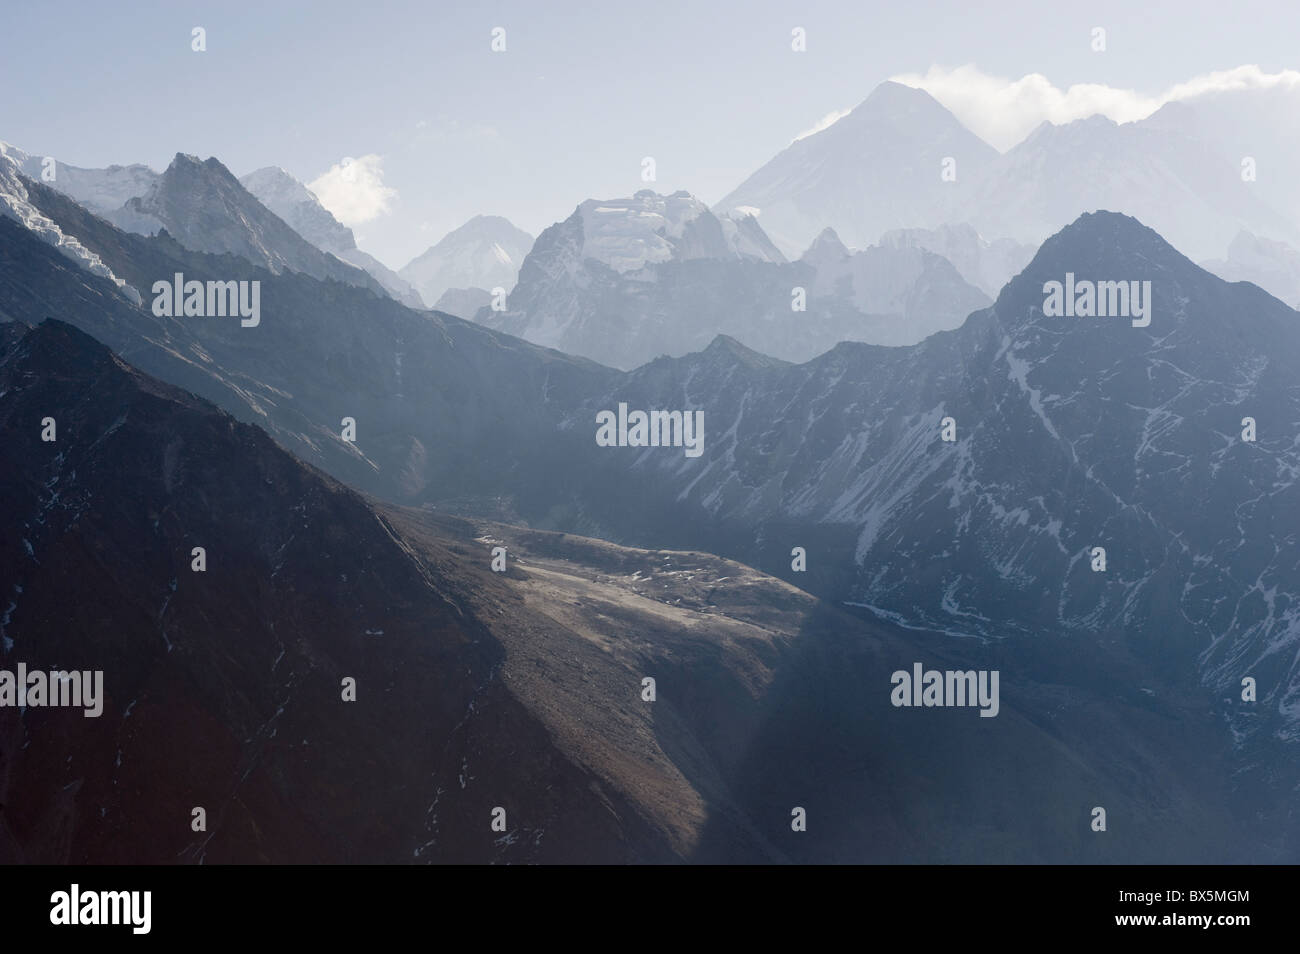 View of Mount Everest, 8850m, from Gokyo Ri, 5483m, Gokyo, Solu Khumbu Everest Region, Sagarmatha National Park, - Stock Image